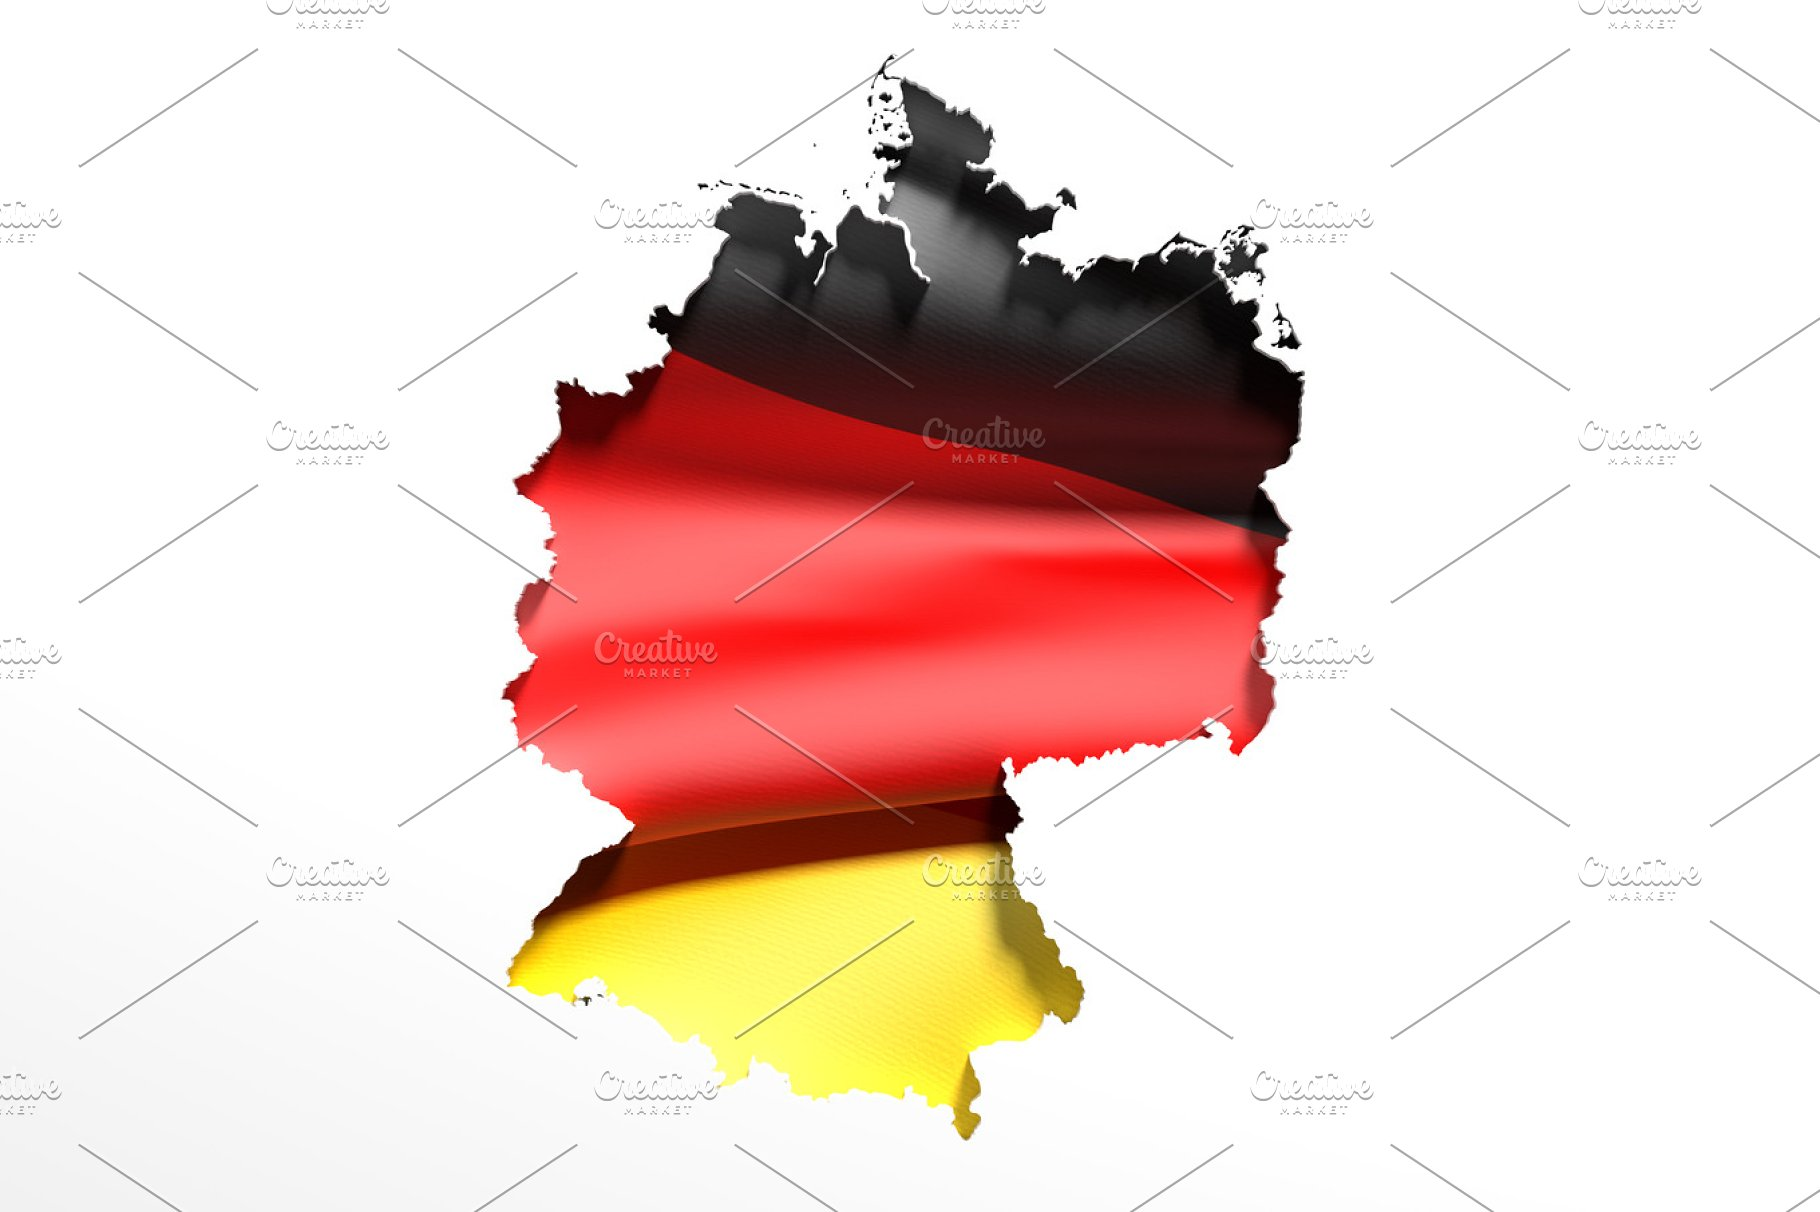 3d Germany map and flag on south sudan flag and map, england flag and map, slovakia flag and map, mozambique flag and map, british flag and map, iran flag and map, kuwait flag and map, france flag and map, arizona flag and map, malaysia flag and map, israel flag and map, syria flag and map, belize flag and map, portugal flag and map, zambia flag and map, chad flag and map, china flag and map, ireland flag and map, lebanon flag and map, ukraine flag and map,